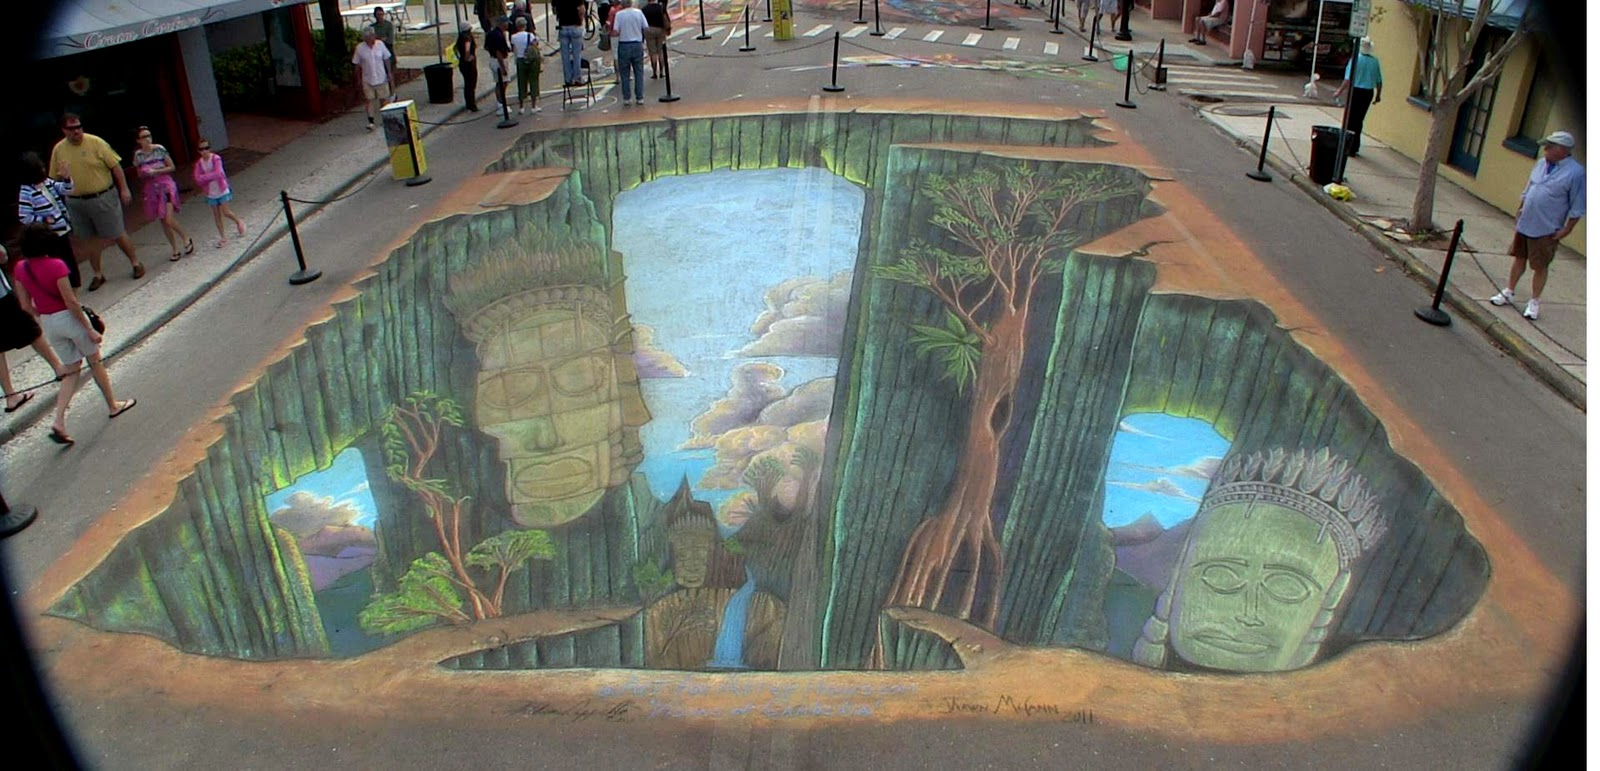 shawn mccann street painting 3d wall murals regulare For3d Street Painting Mural Art